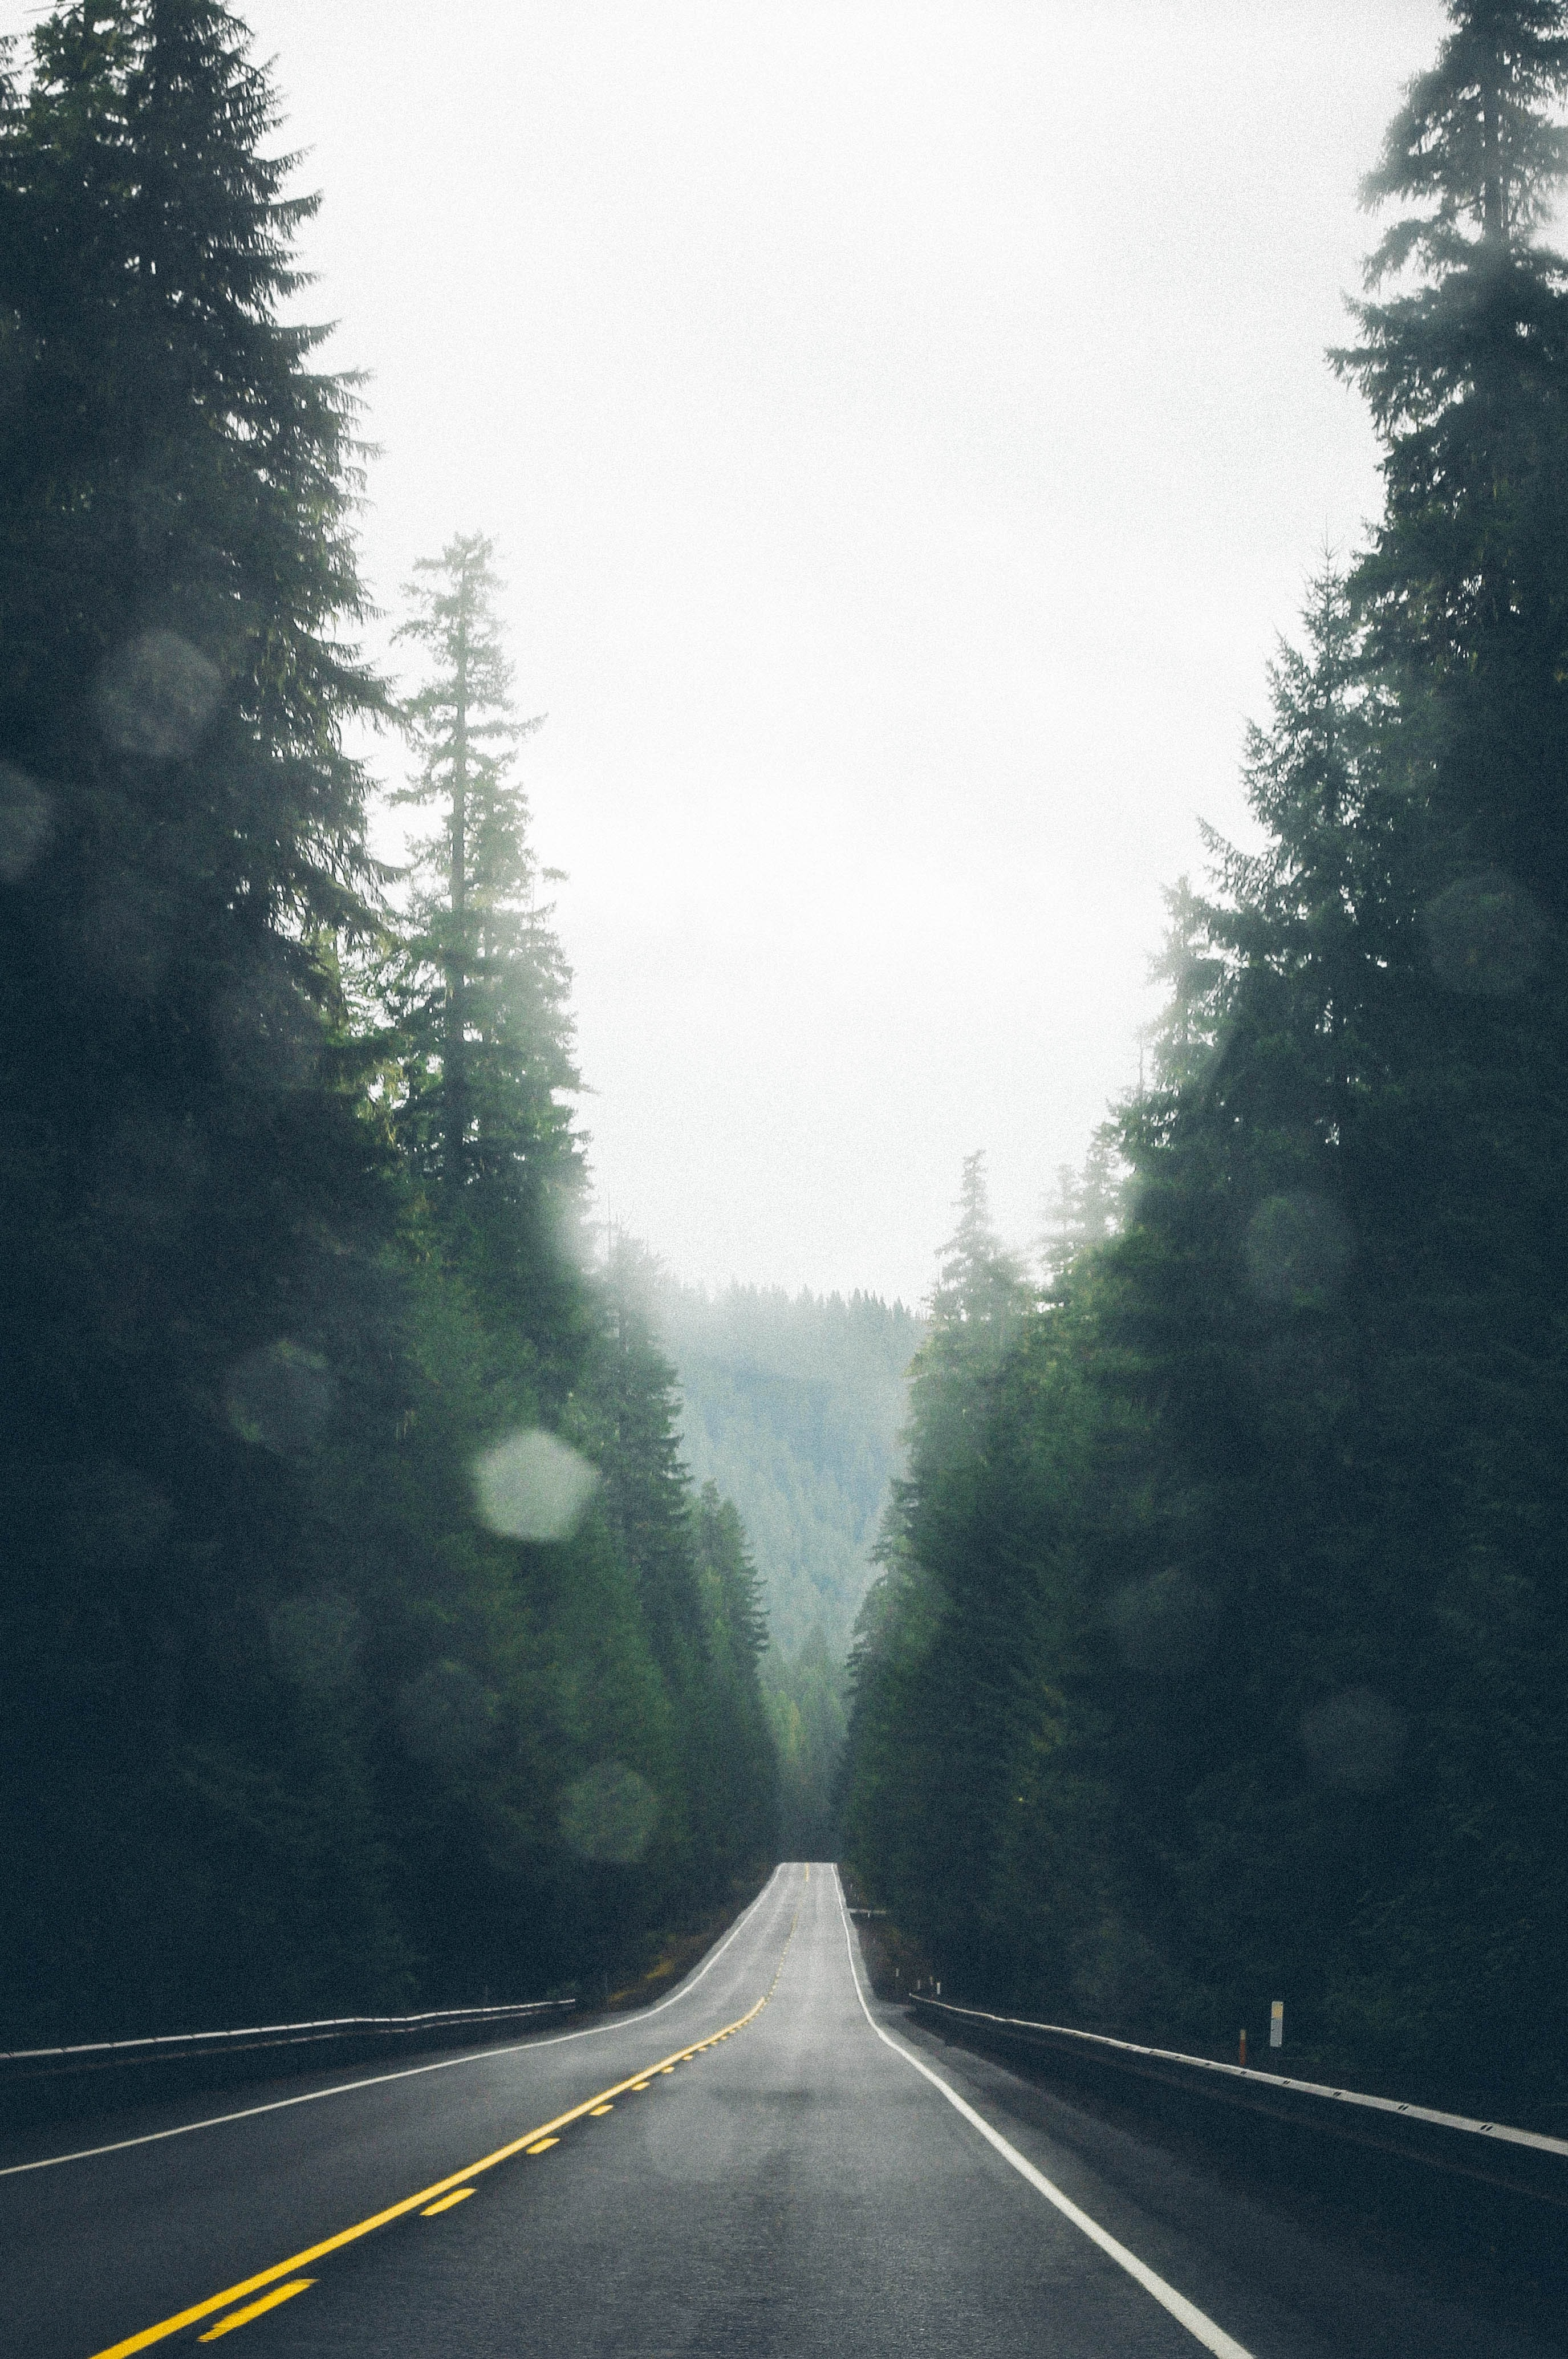 empty asphalt road surrounded by trees